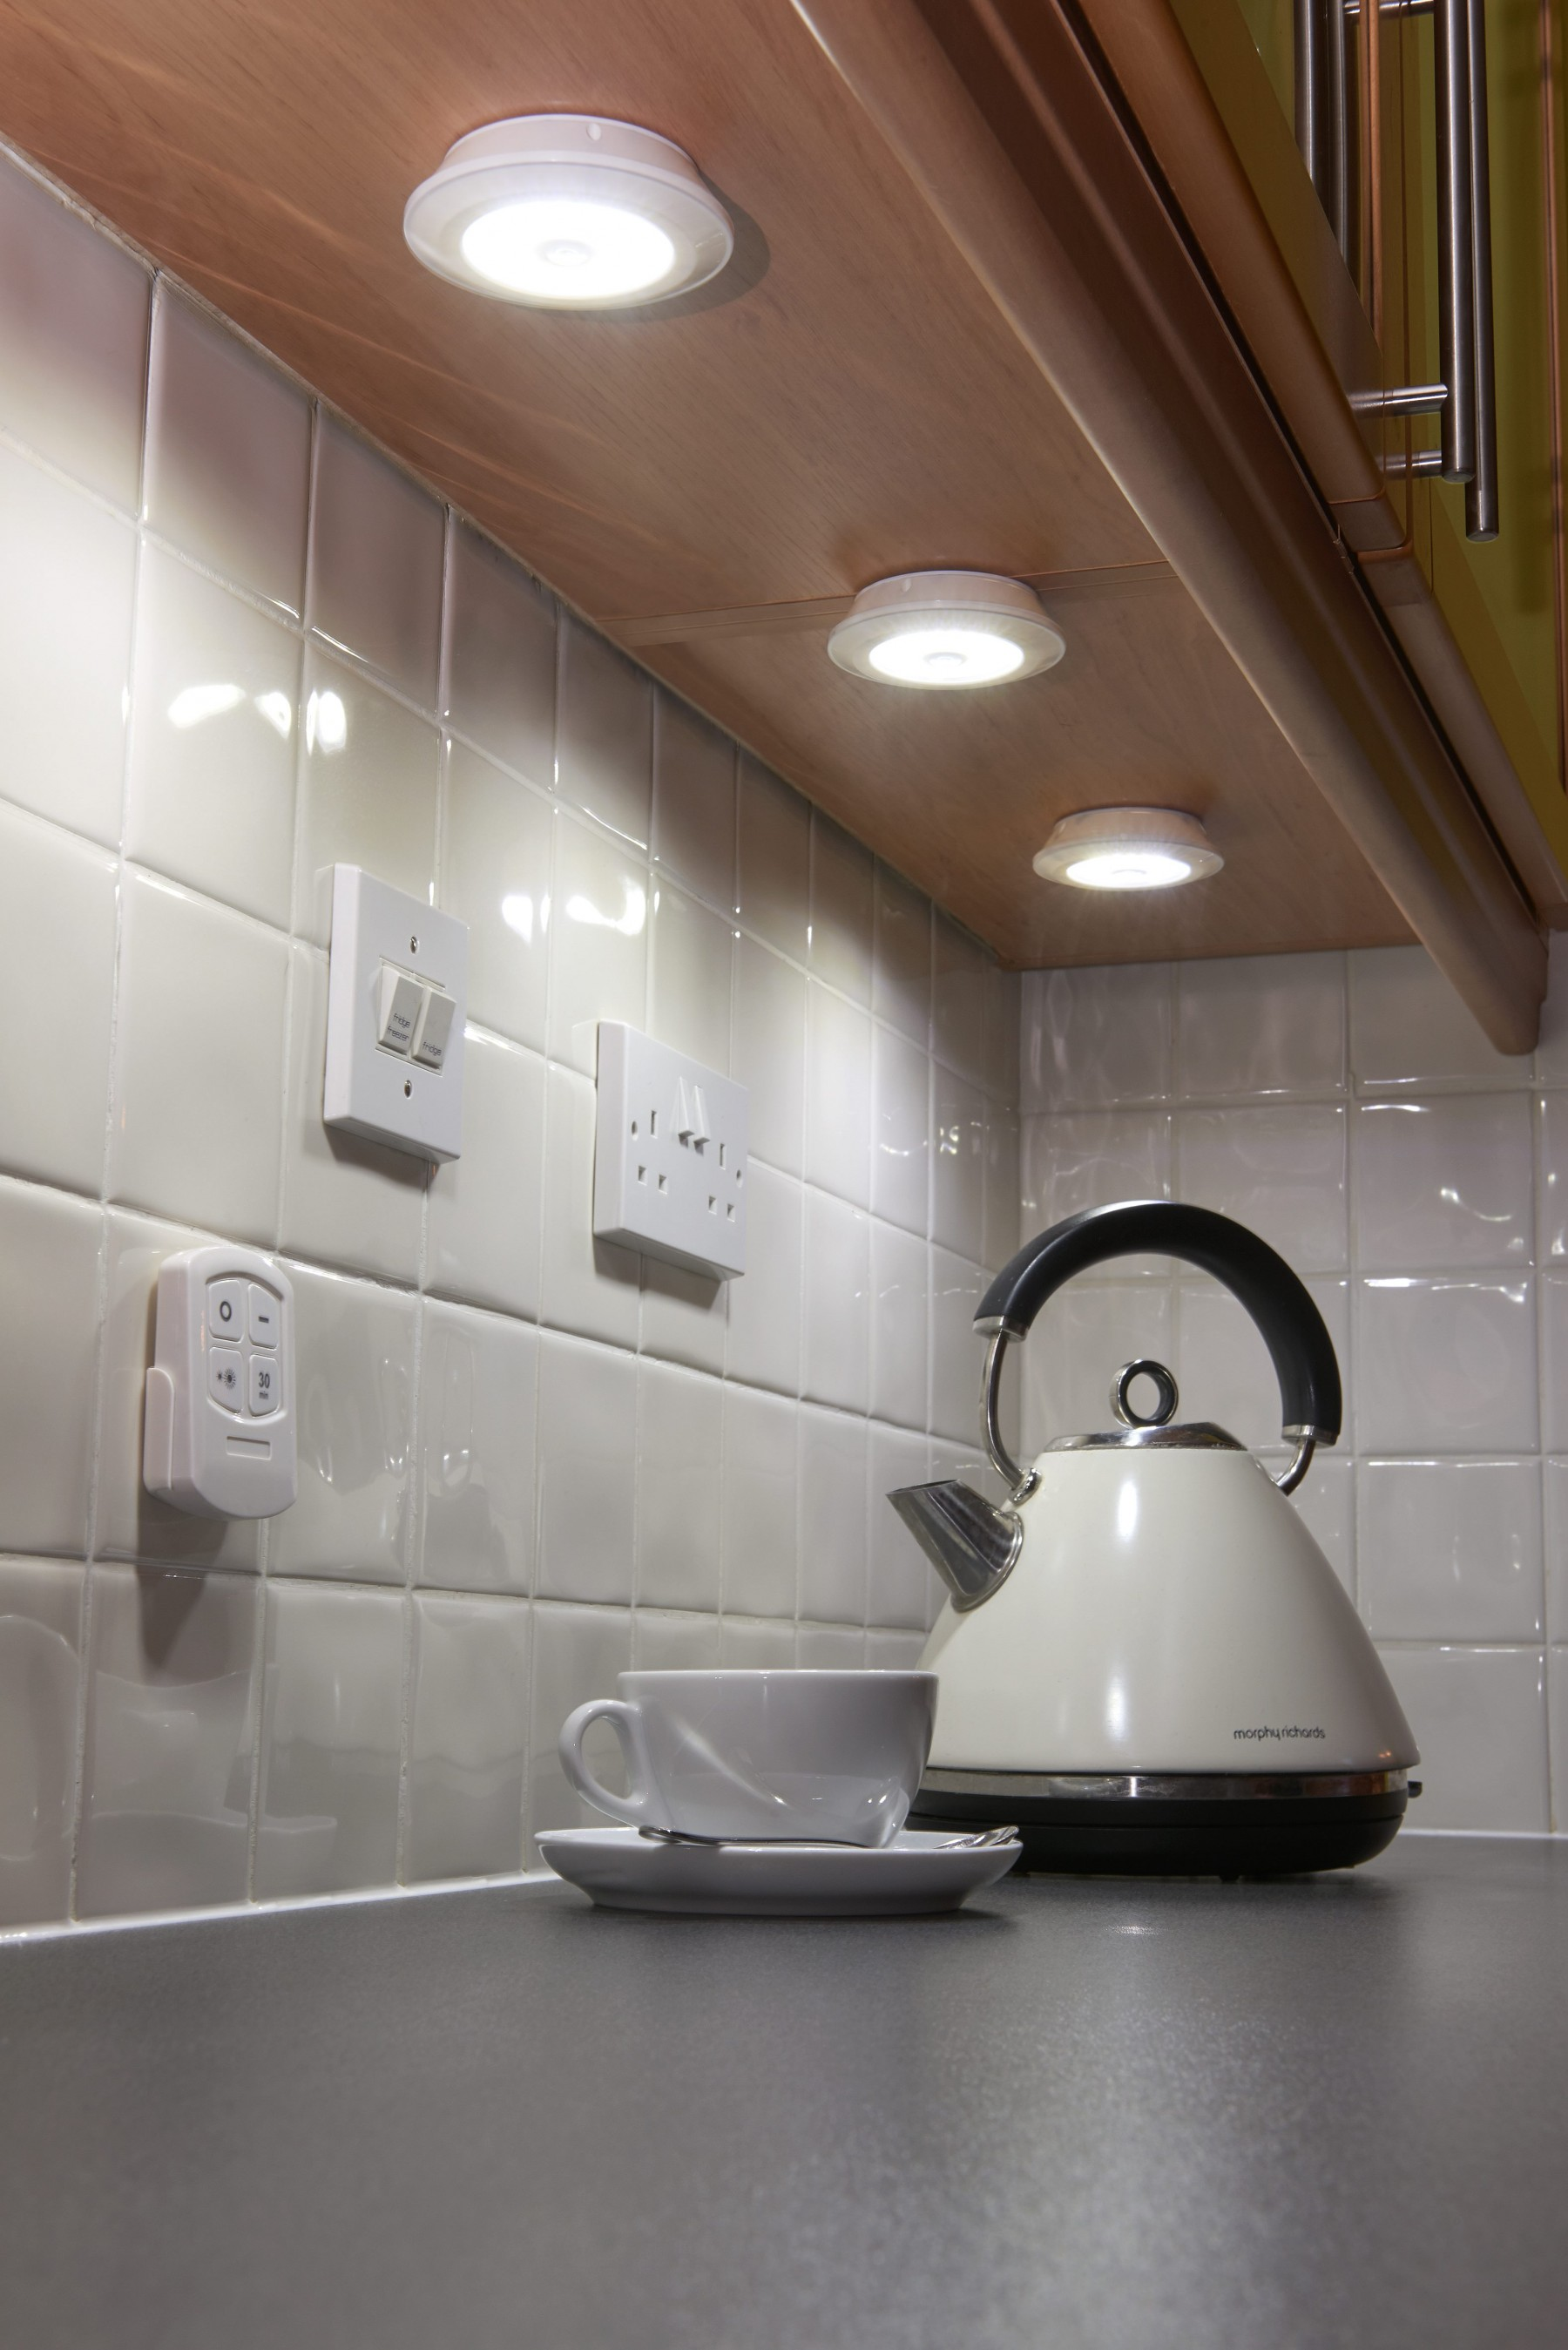 Auraglow Remote Controlled Wireless Under Cabinet Led